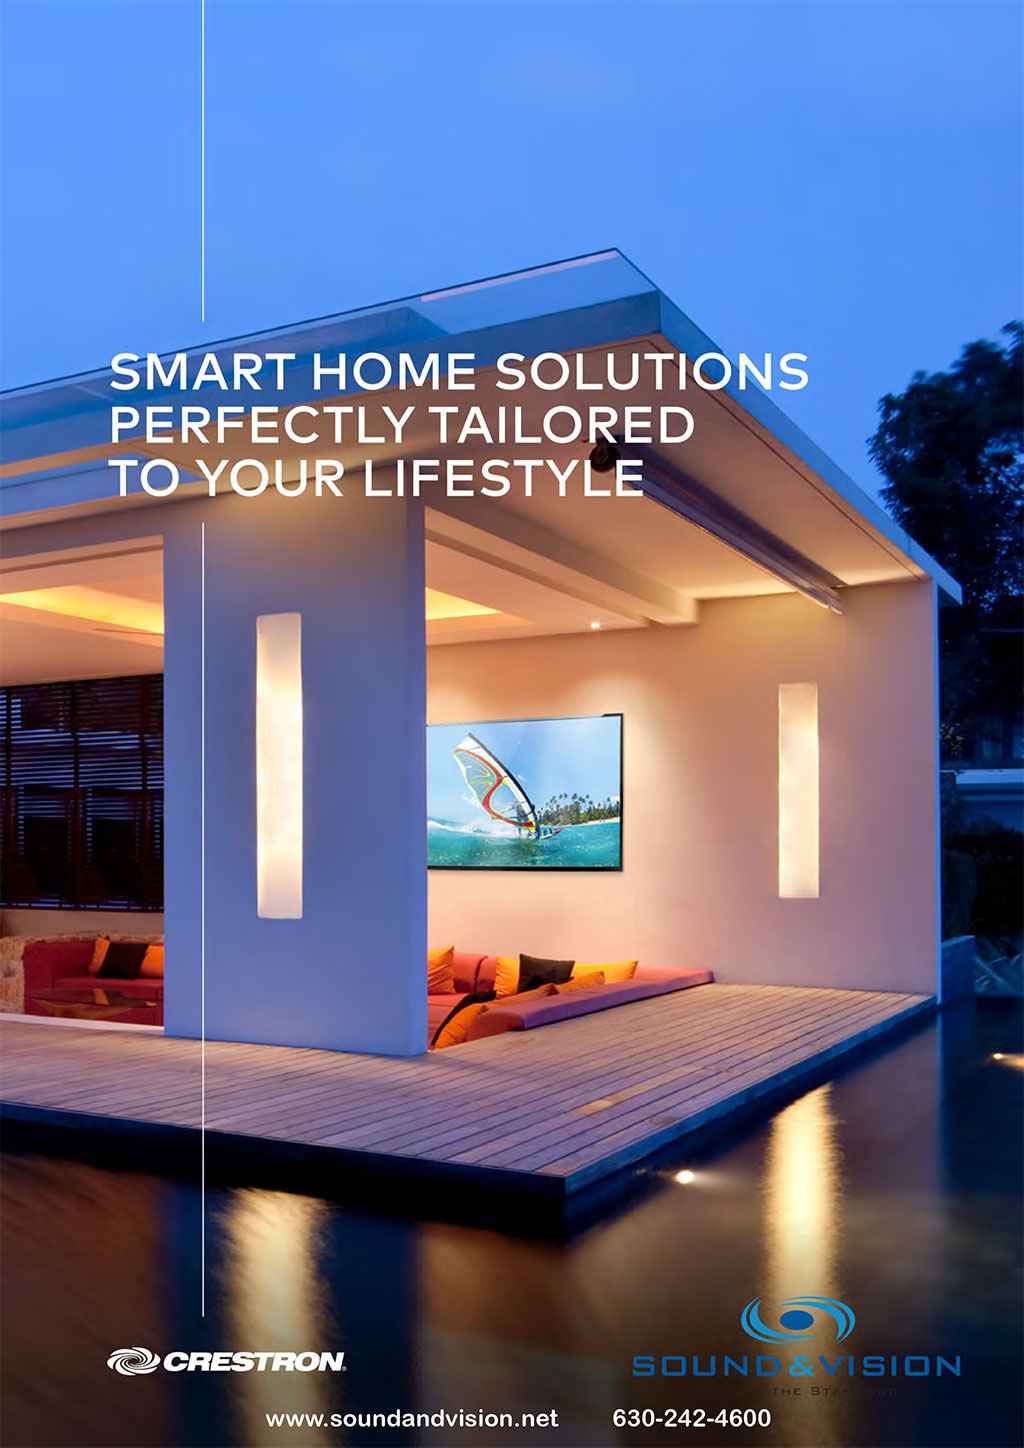 Get our Smart Home Guide